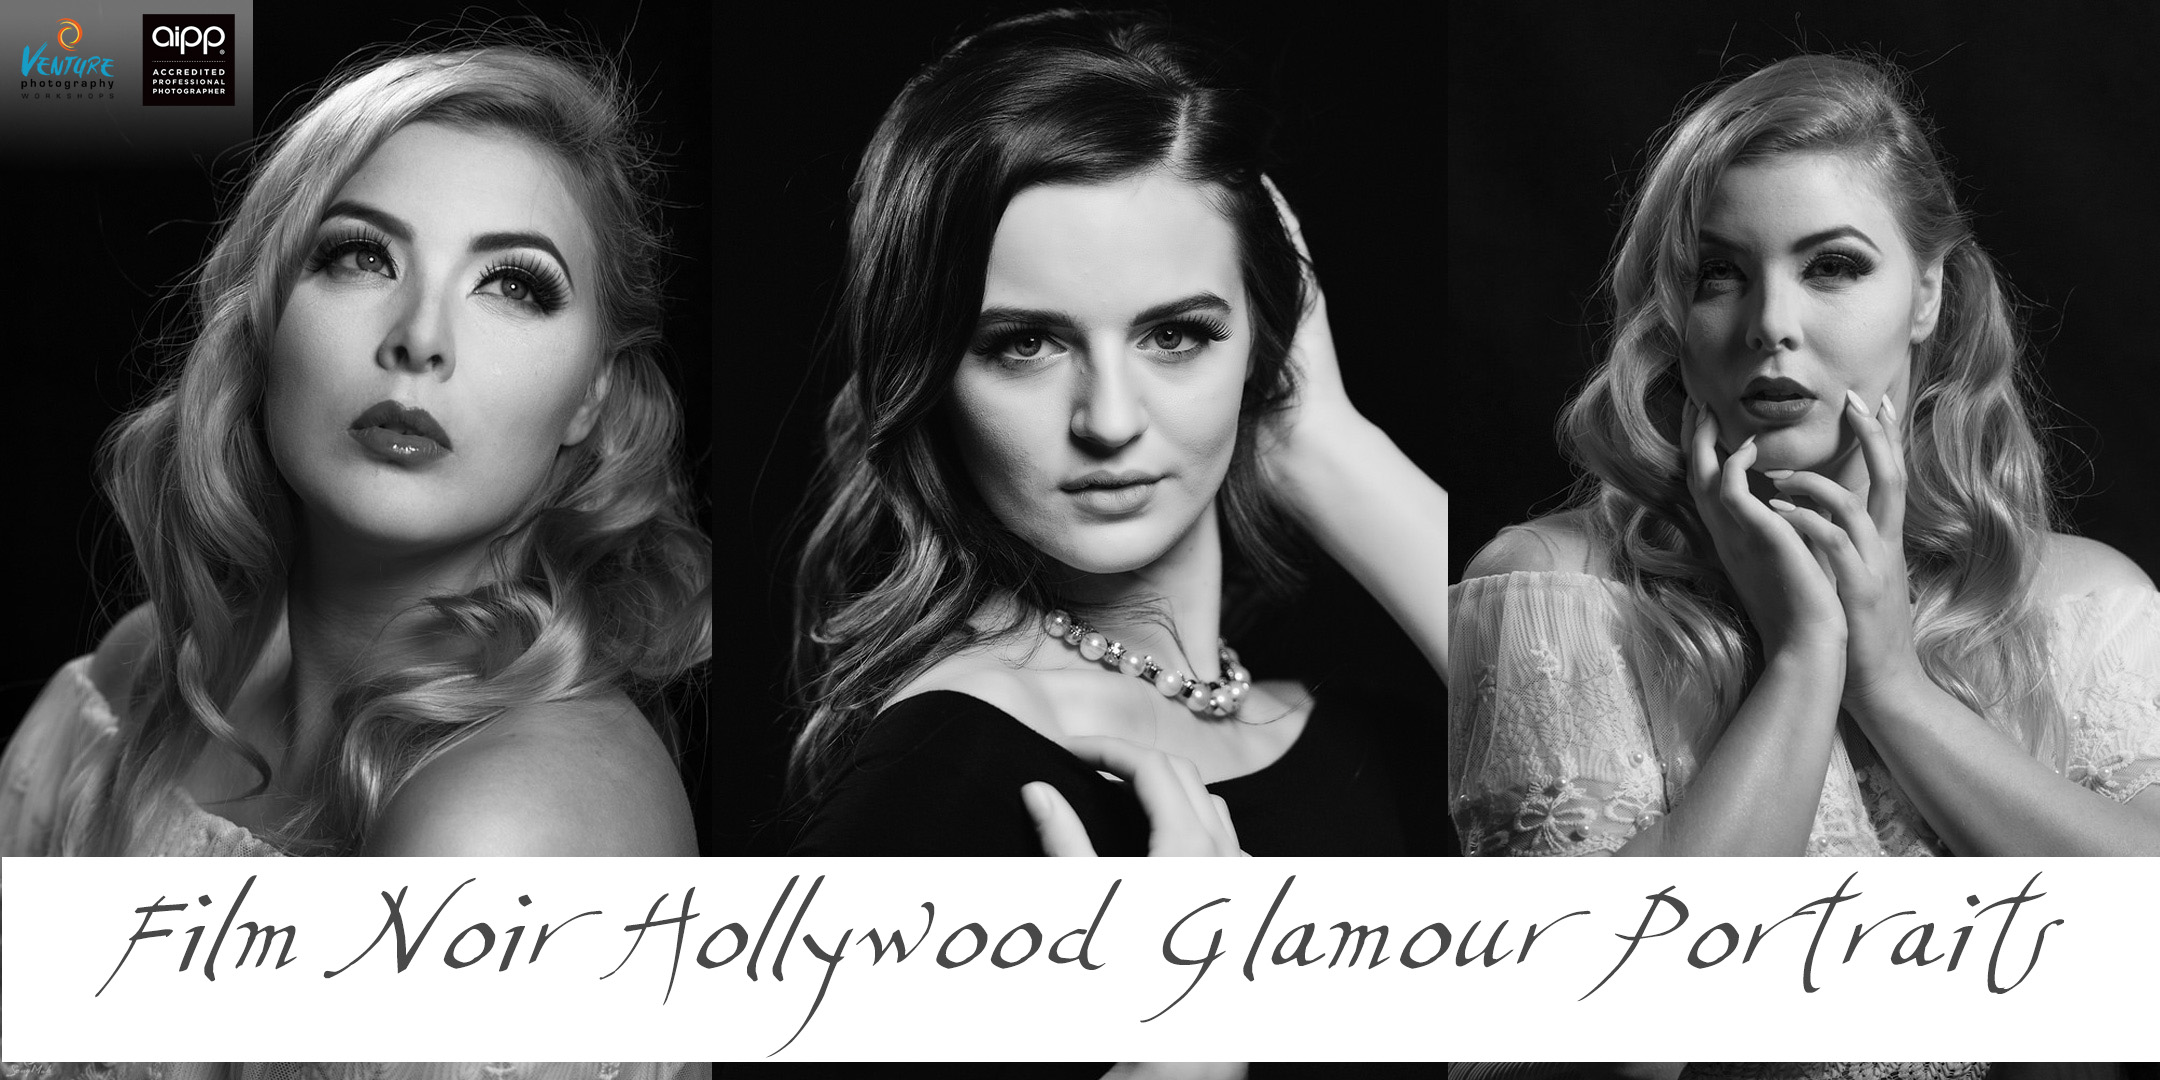 Film Noir Hollywood Glamour Portraits